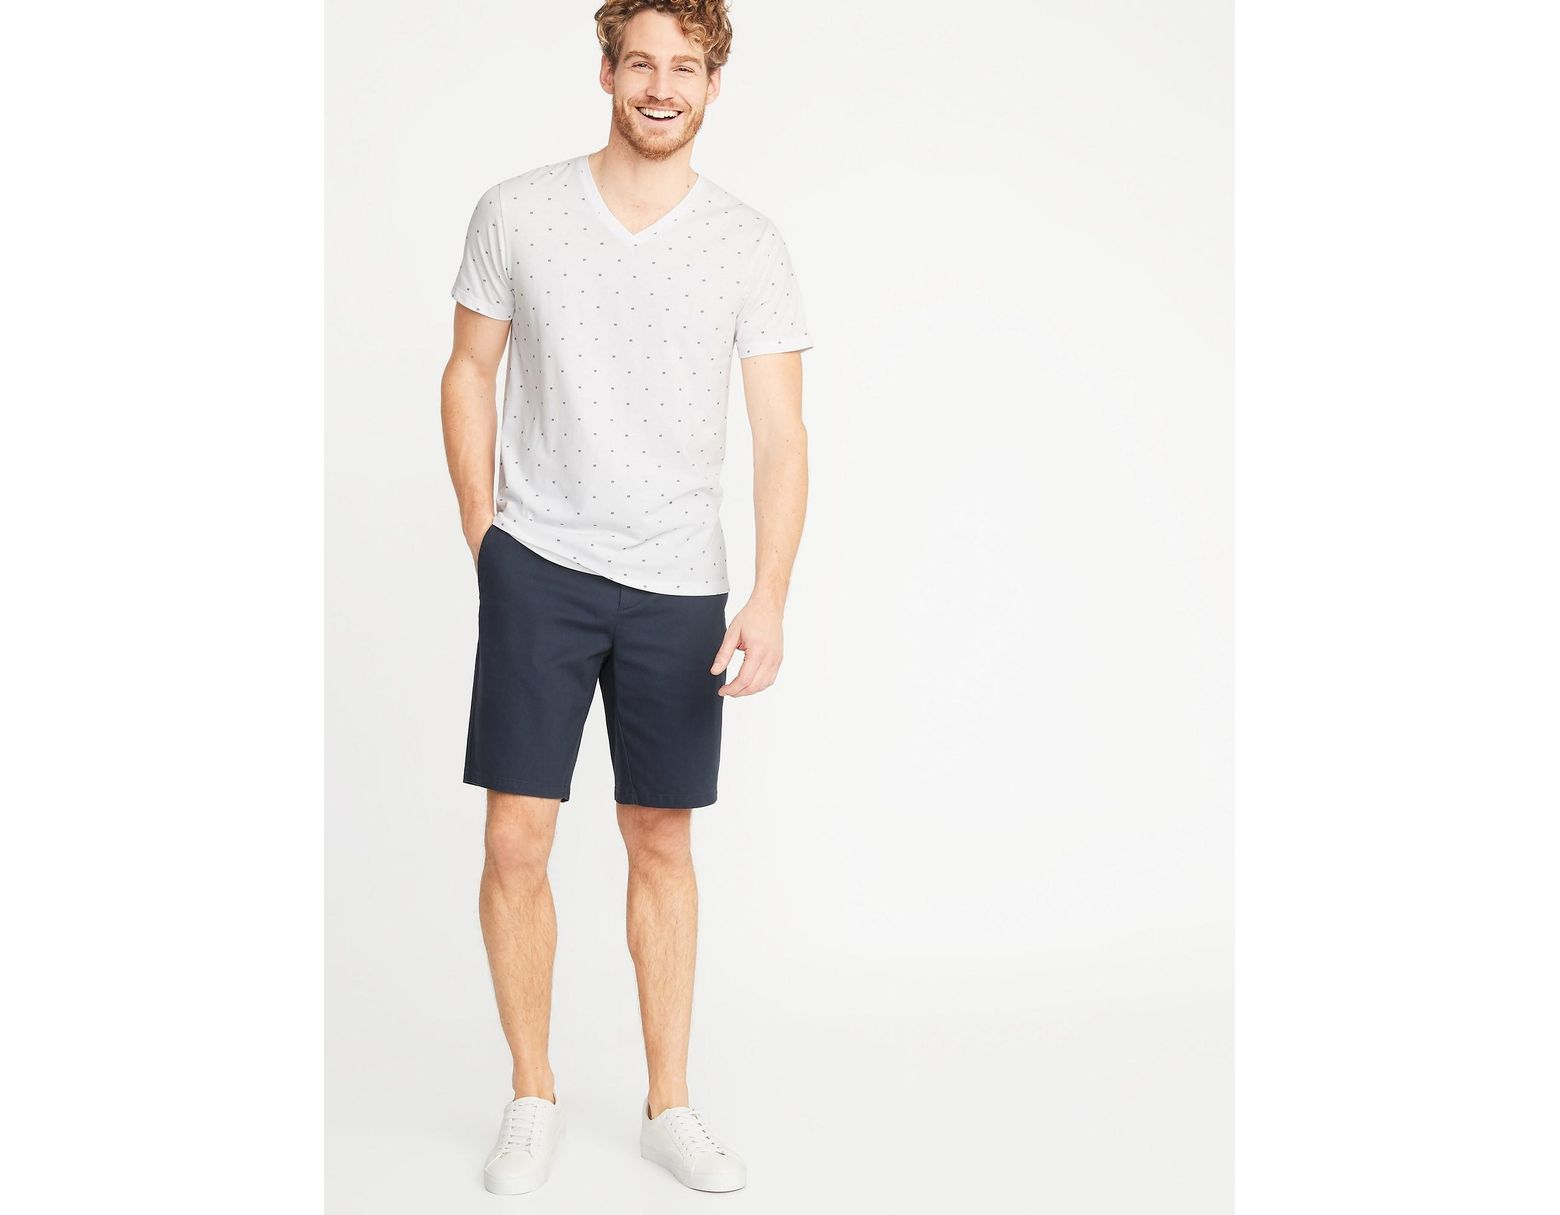 04d7b1f20 Old Navy Soft-washed Printed V-neck Tee for Men - Save 17% - Lyst